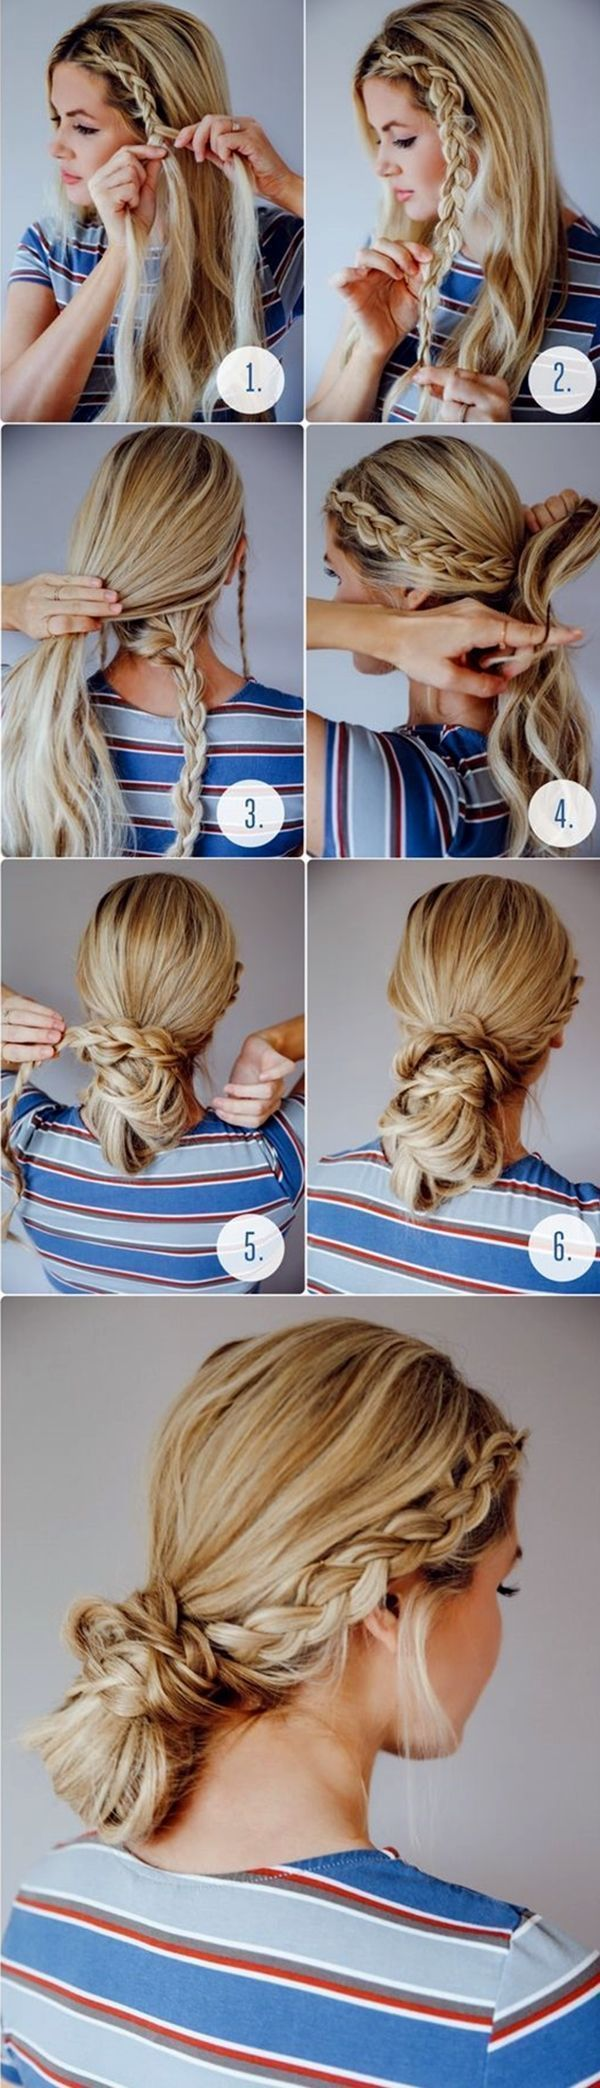 quick-hairstyle-tutorials-for-office-women-10 - #hairstyle #office #quick #tutor...,  #Hairst...